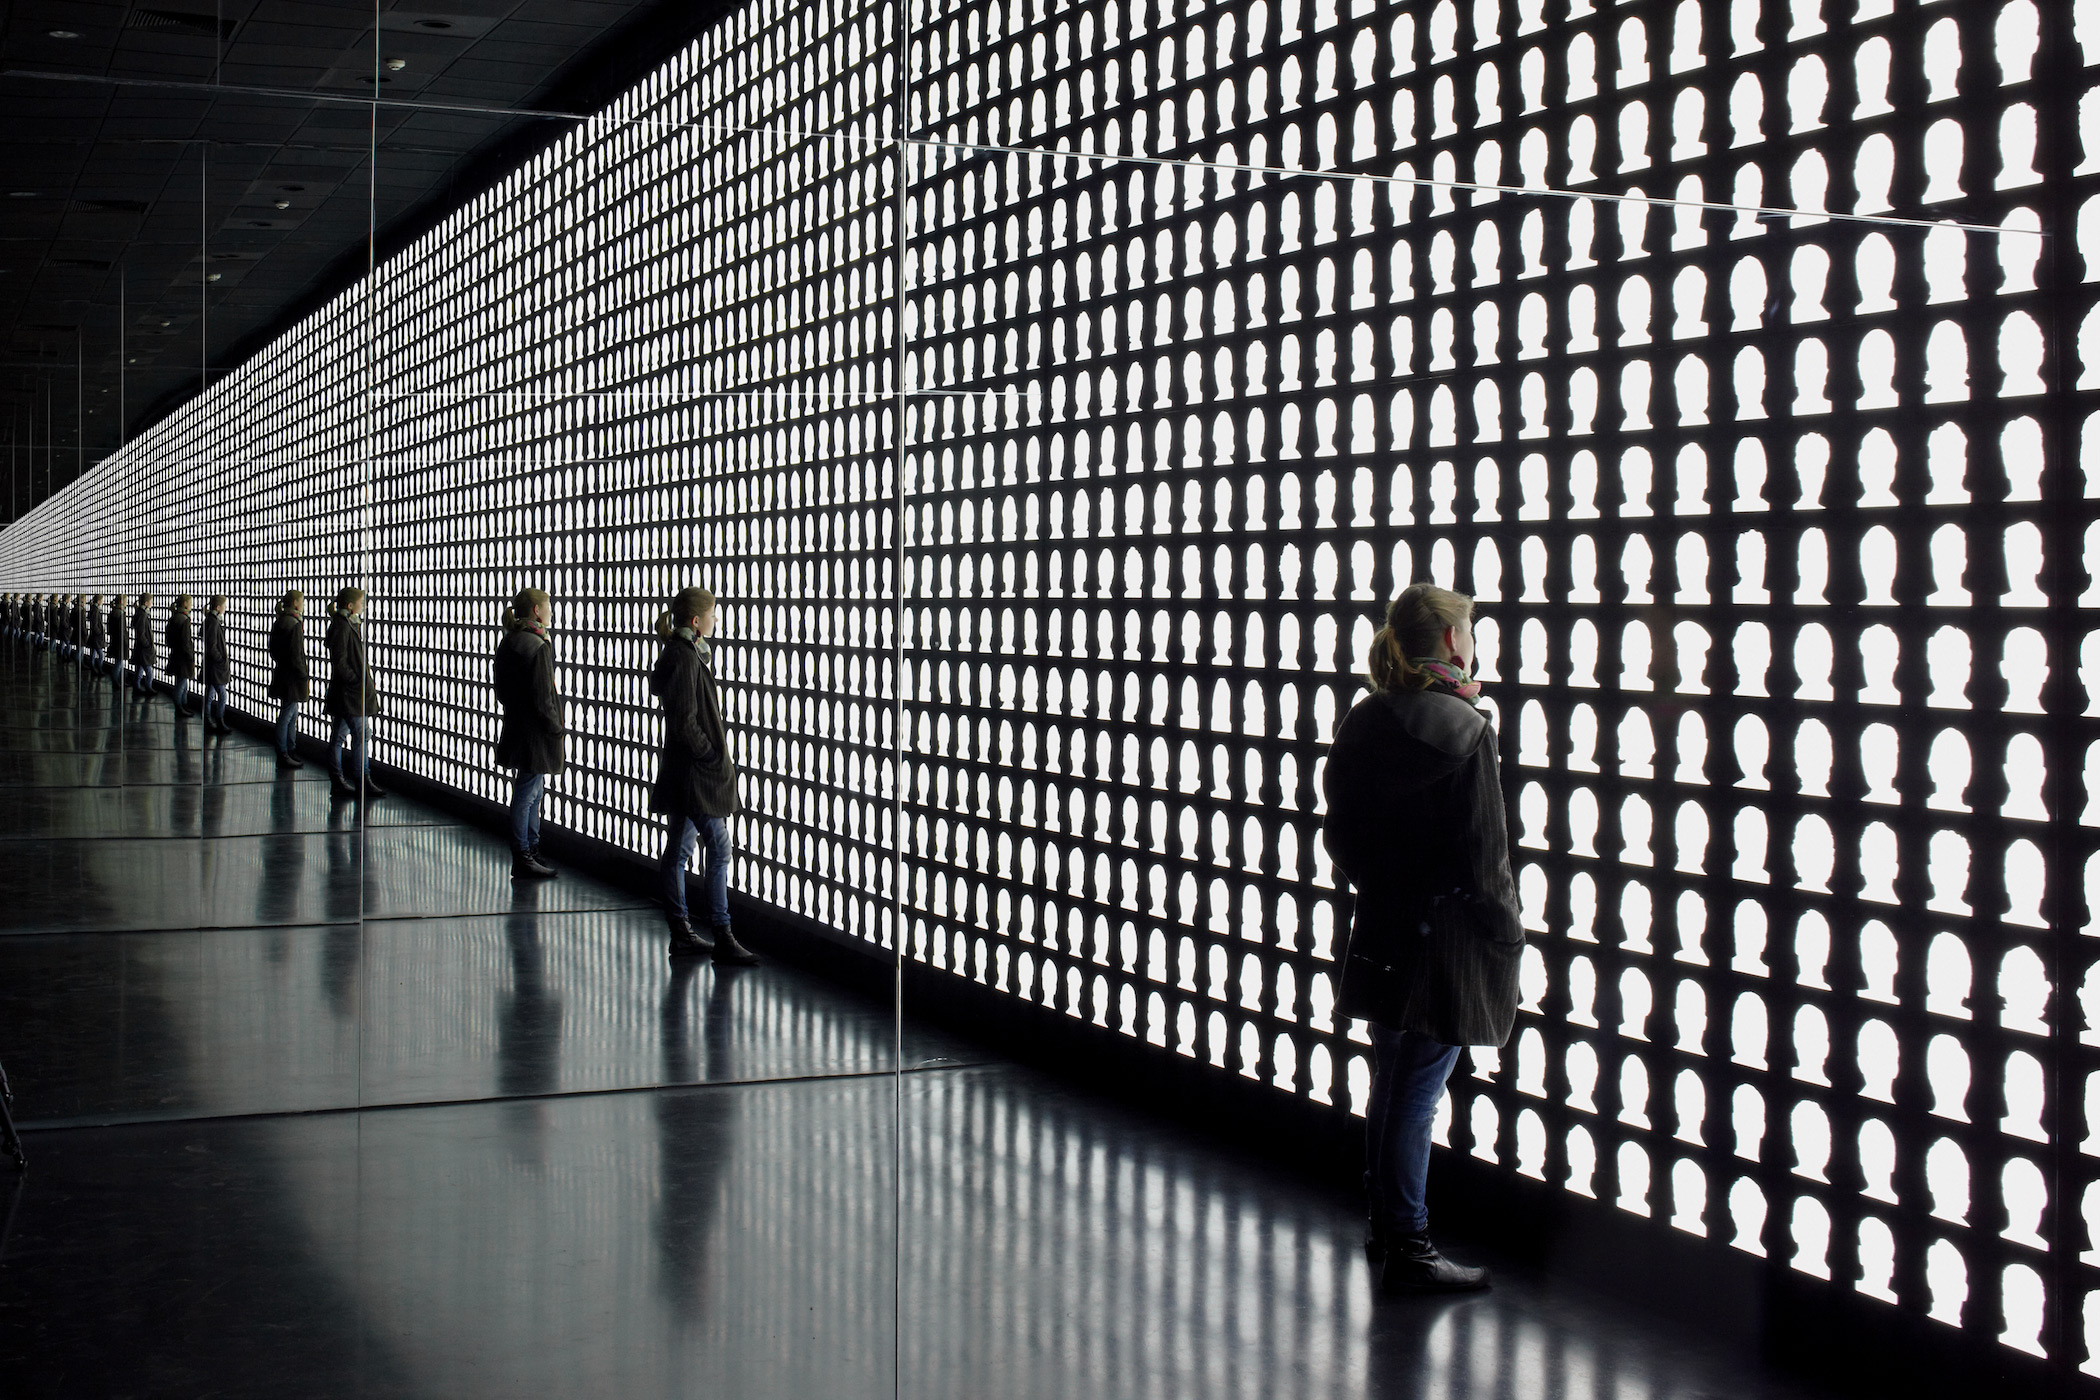 Alfredo Jaar, The Geometry of Conscience, 2010, Santiago de Chile, Museo de la Memoria y de los Derechos Humanos, Courtesy the artist, New York, Photography: Cristobal Palma